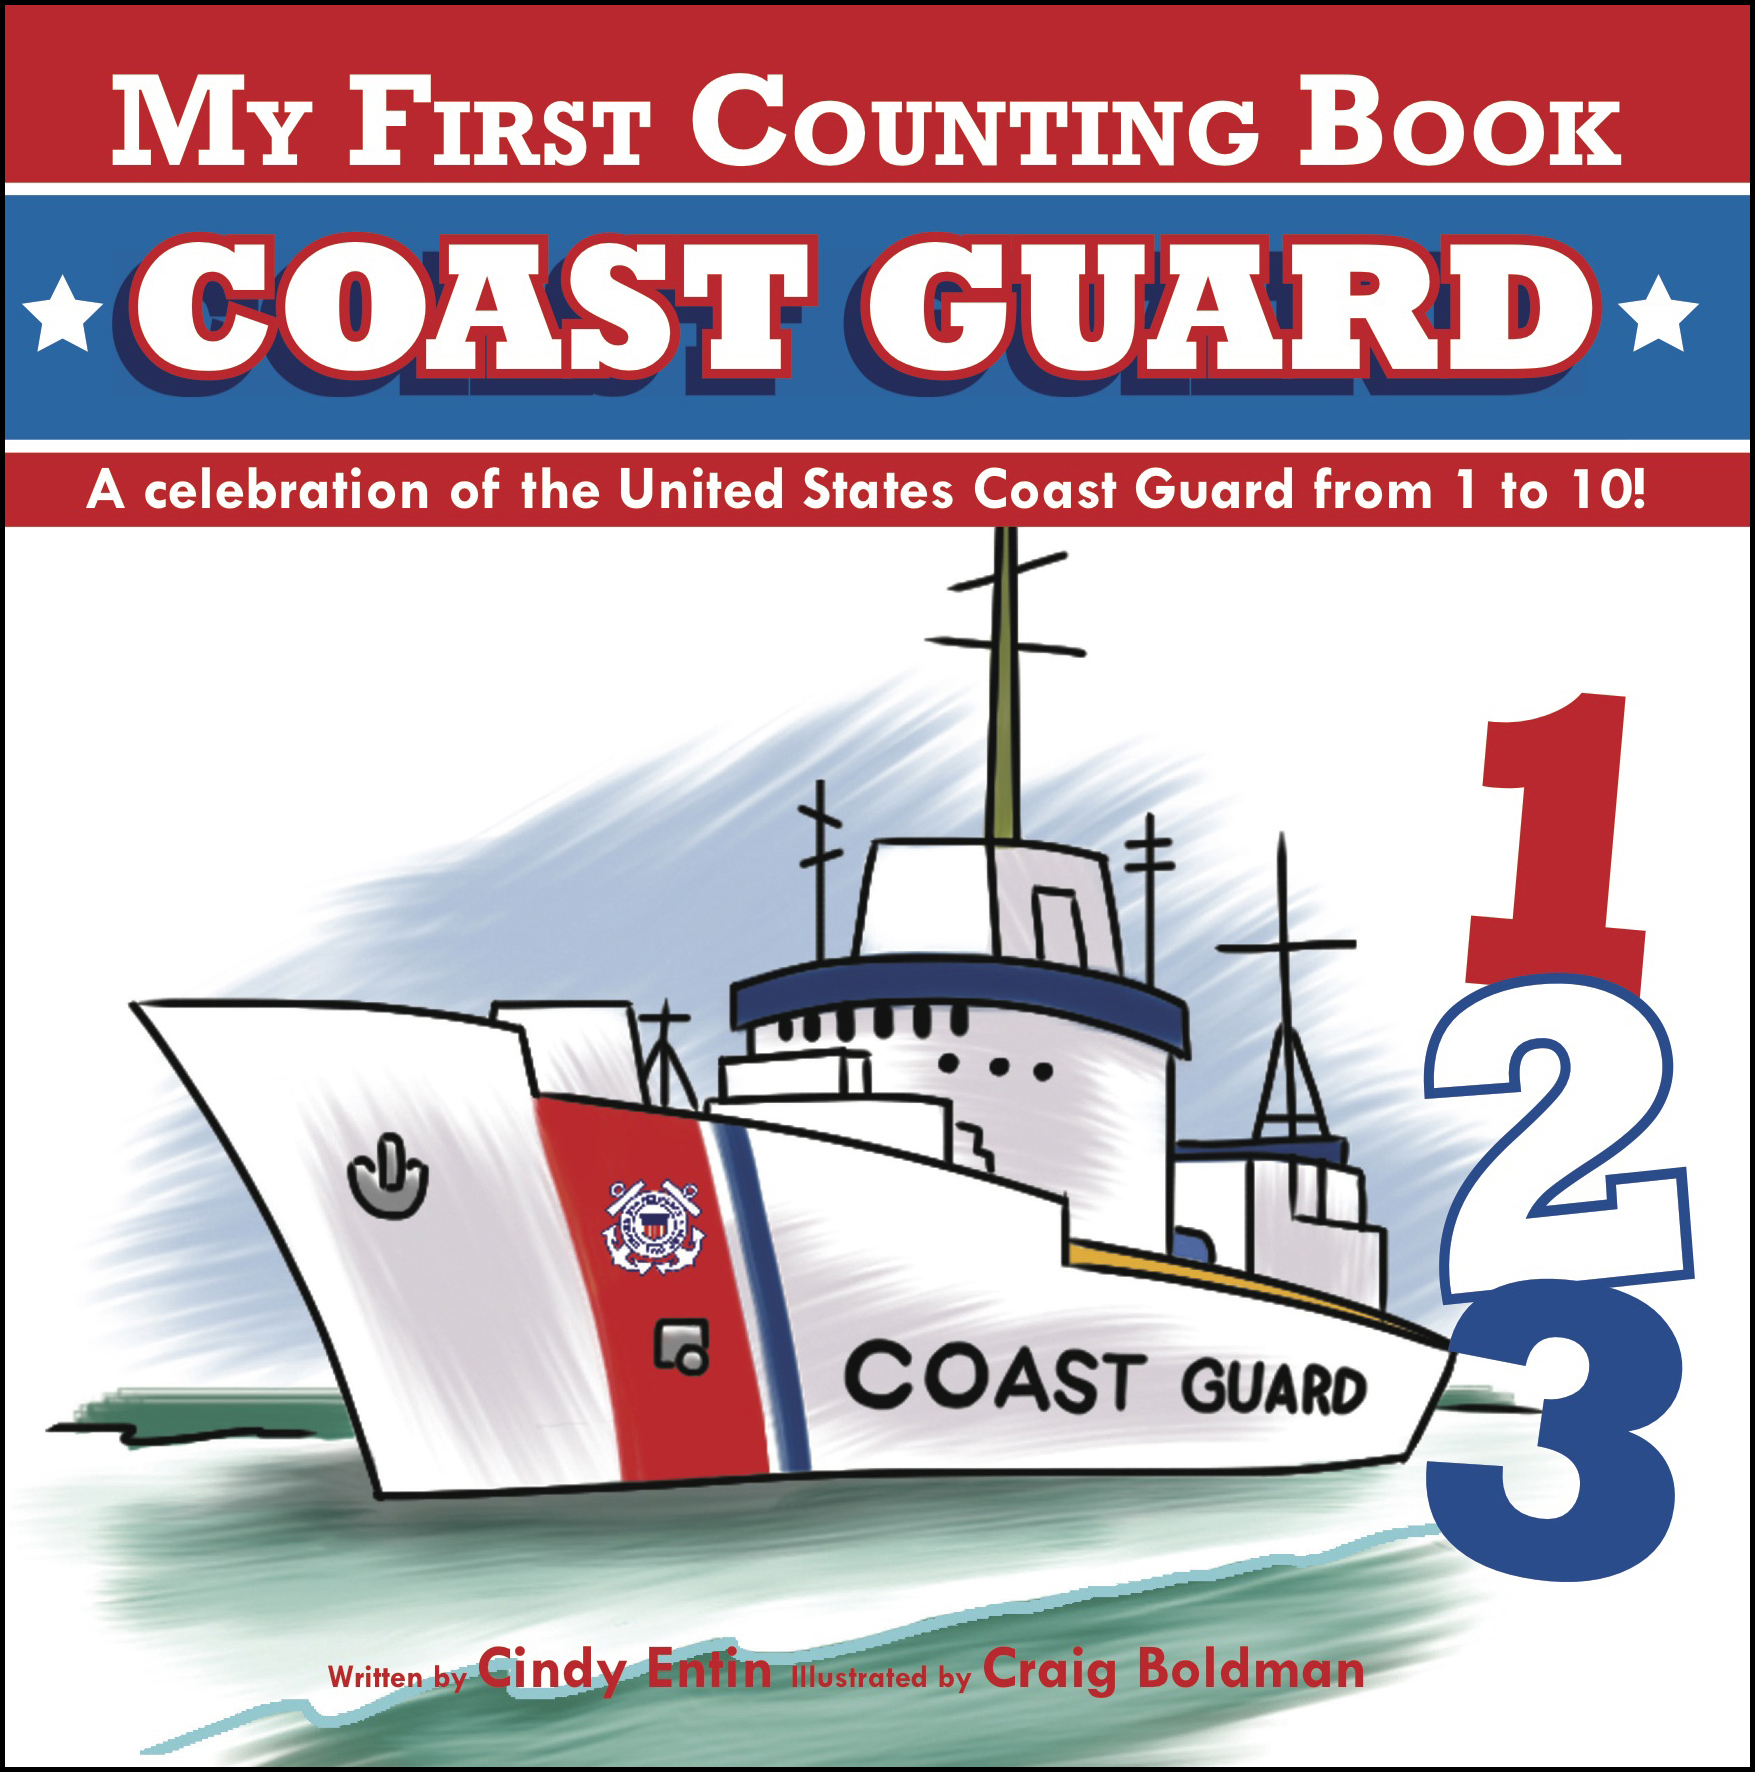 My-first-counting-book-coast-guard-9781604334609_hr